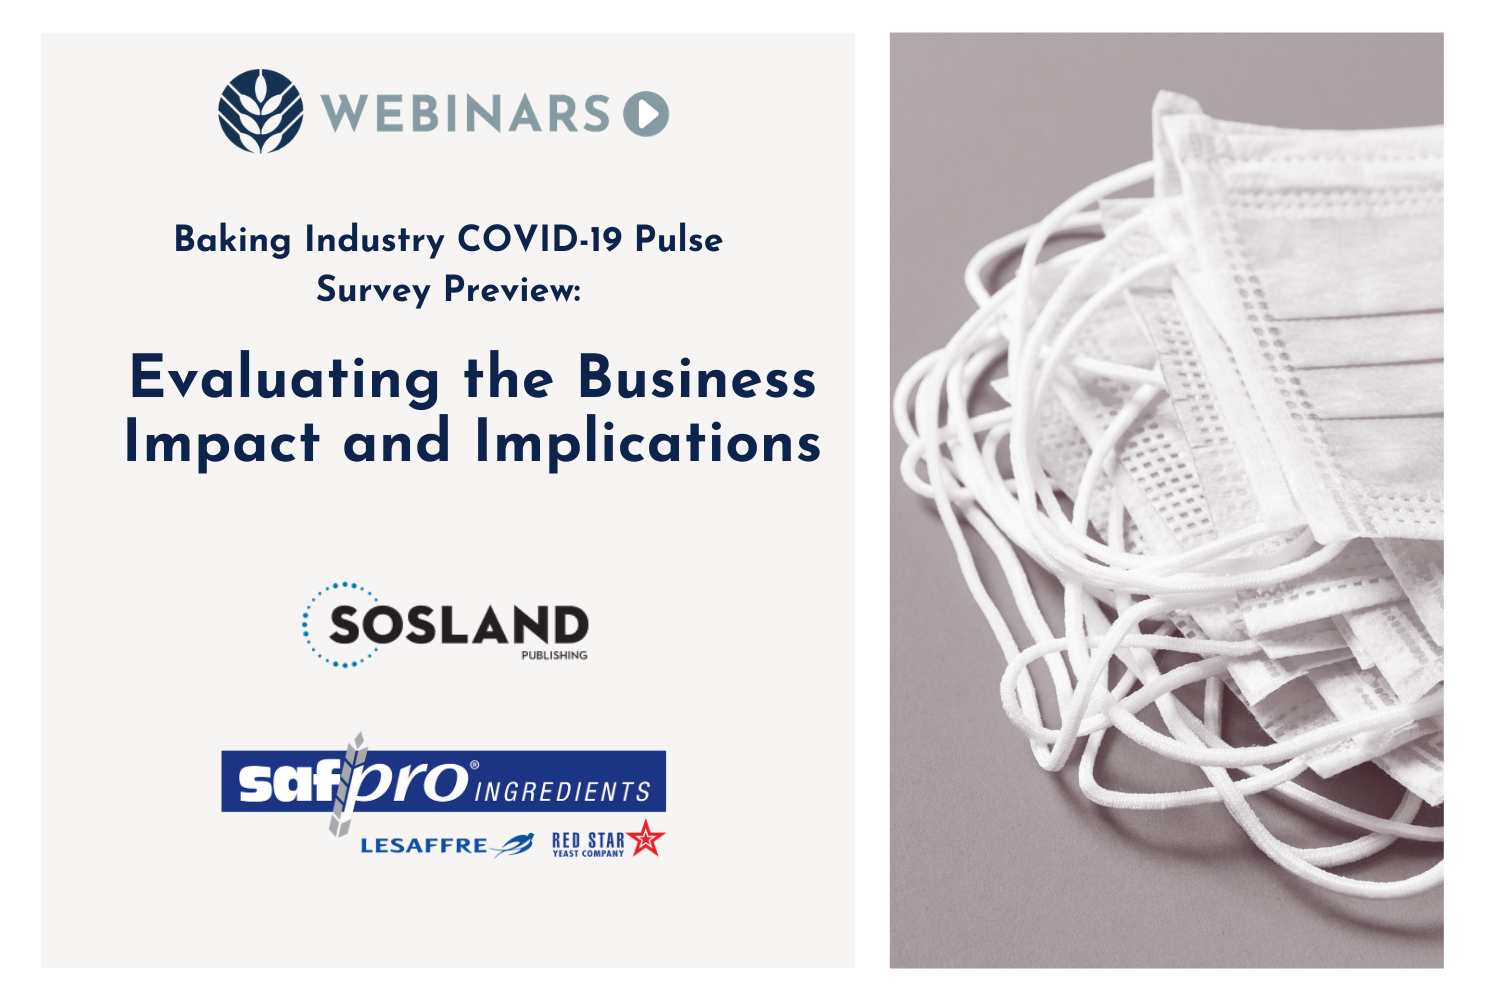 covid-19 webinar american bakers association